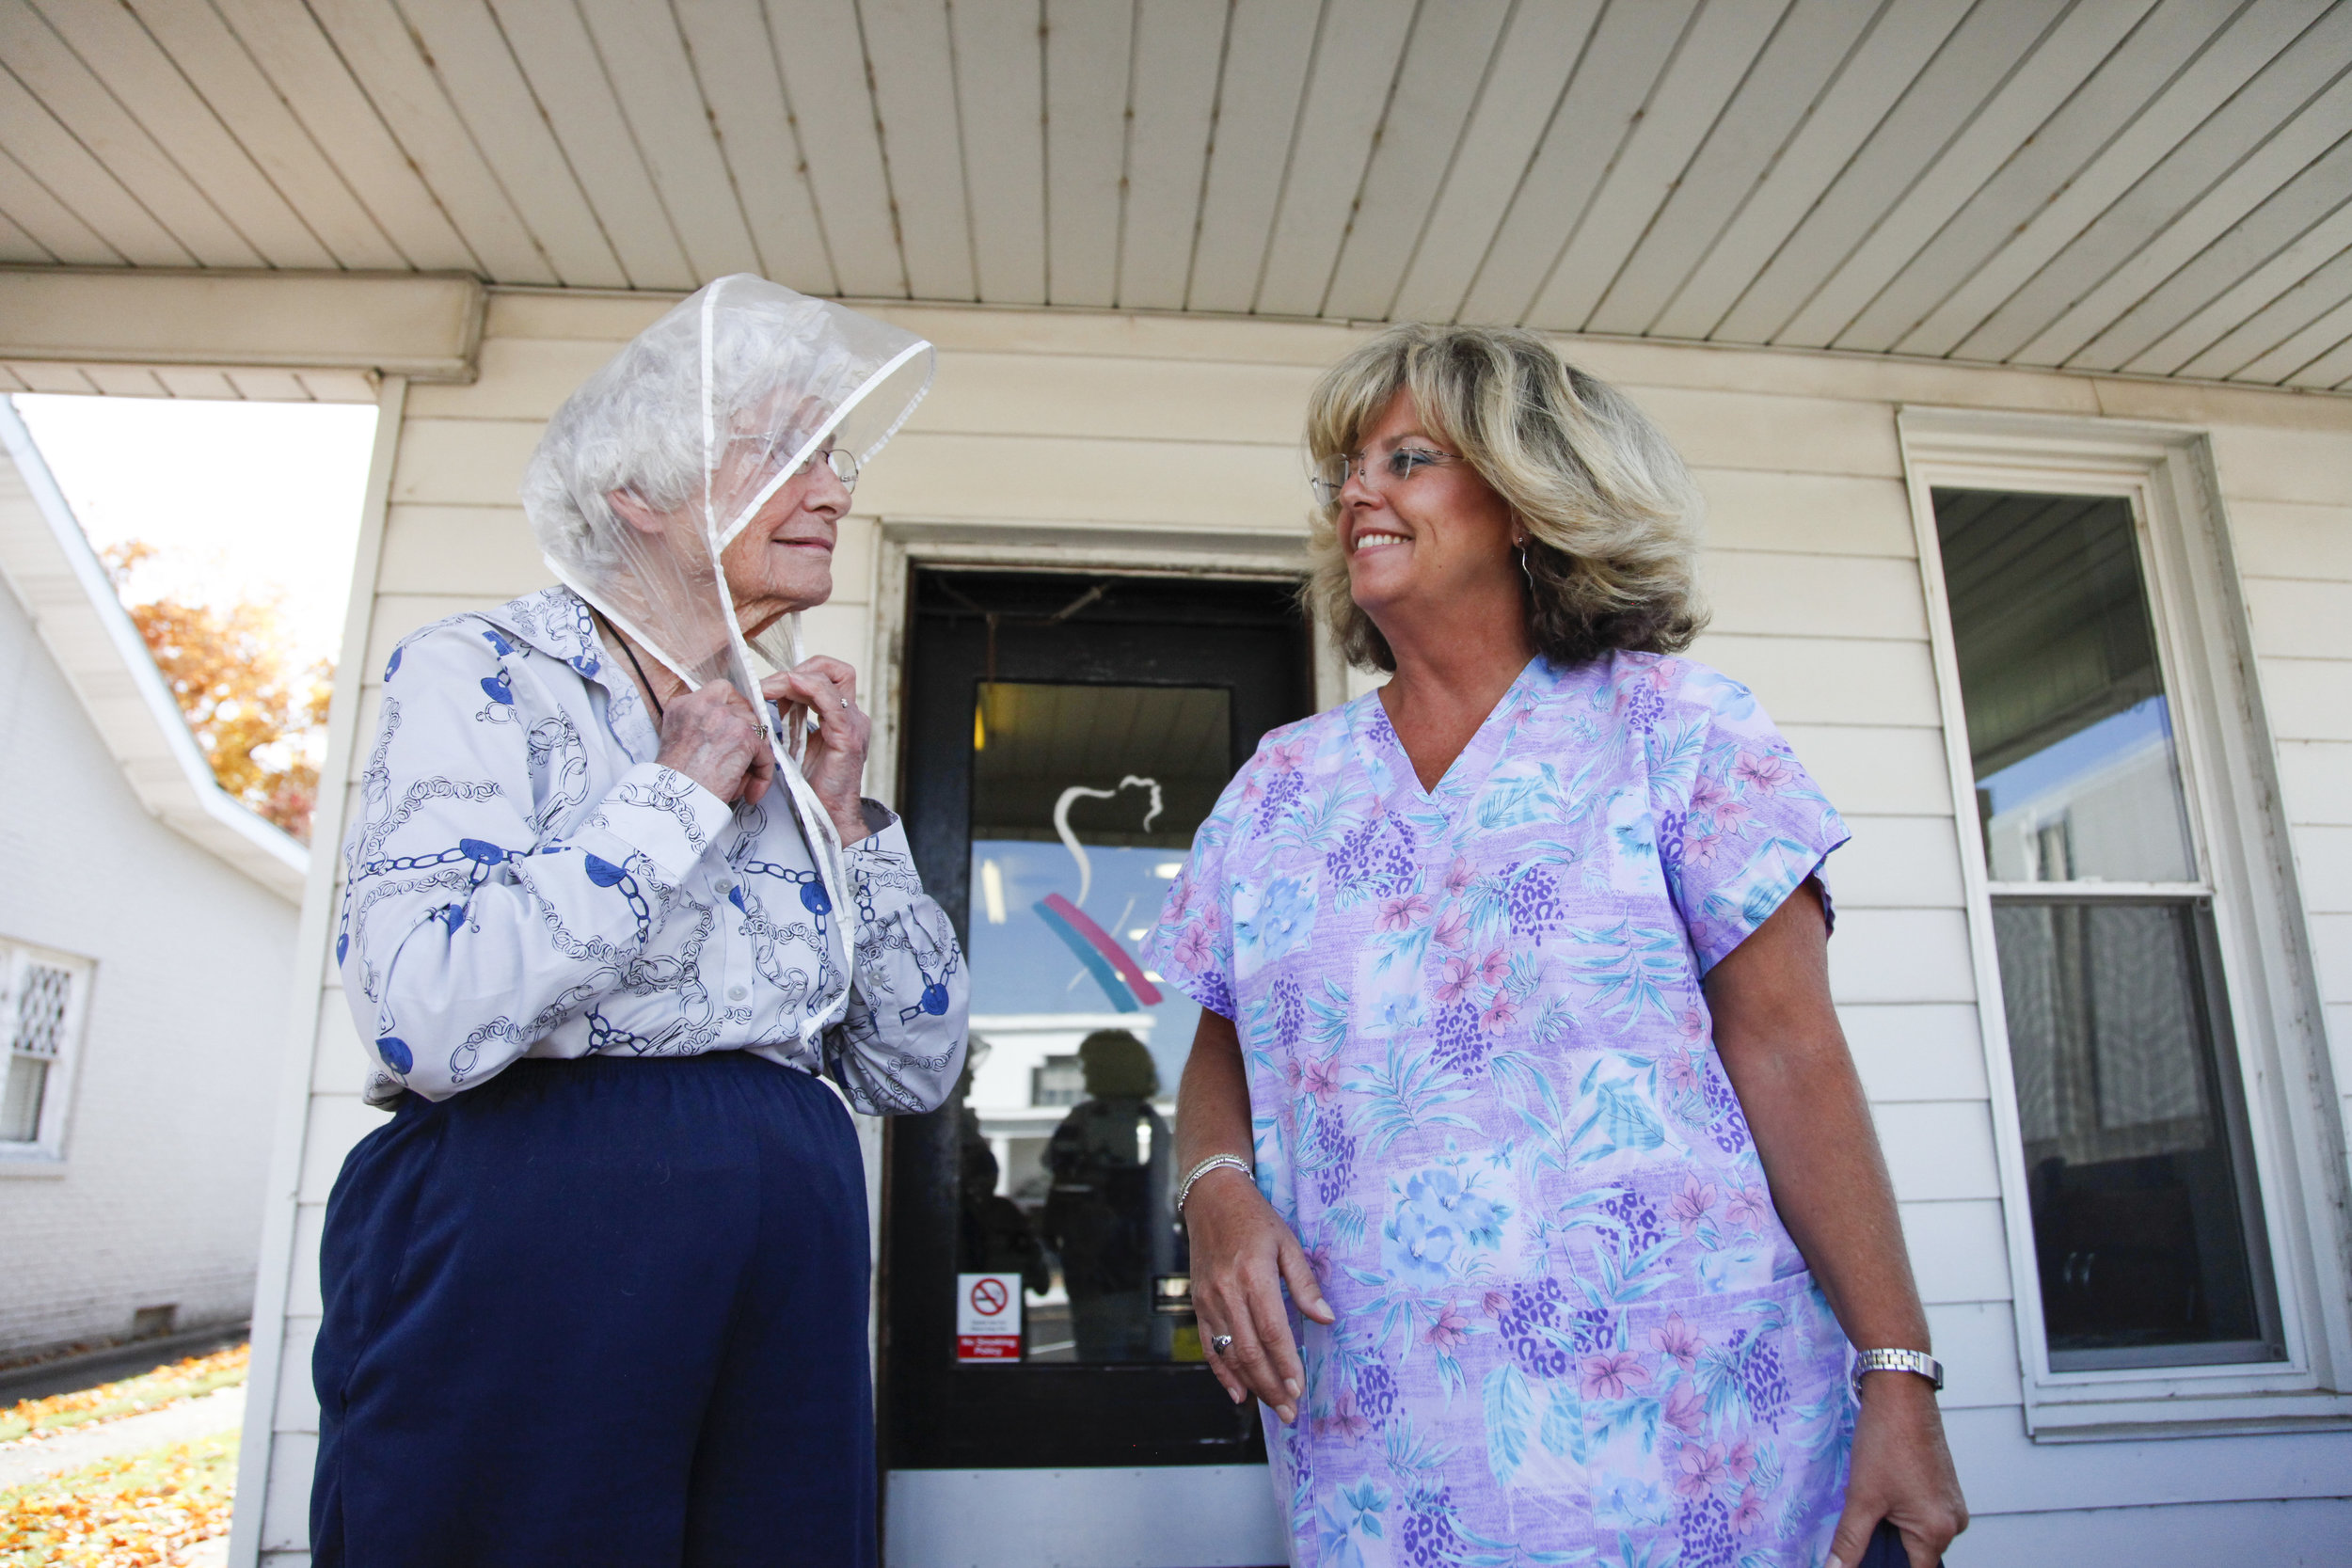 Kelly Alvey, (right), holds Gladys Luck's purse as she puts her rain scarf on after receiving her weekly hairdo at Kelly's Mane Event. Because 90-year-old Gladys has walking difficulties, Kelly assists her when she leaves the salon.